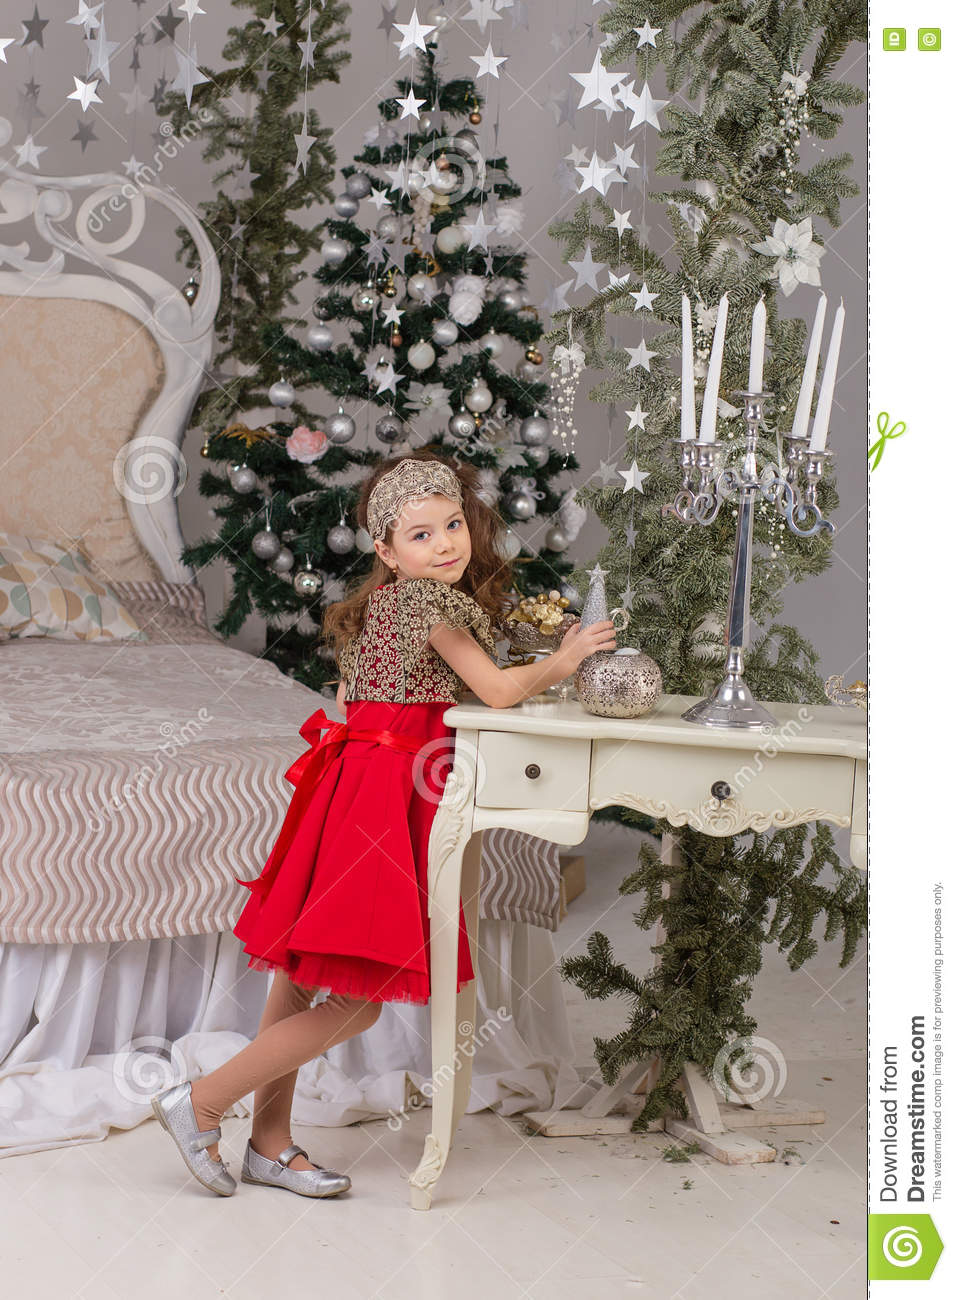 f0abdc75da3de Little beautiful girl in a red evening dress the Christmas tree. Girl in red  in Christmas decorations. Cute child on the bed